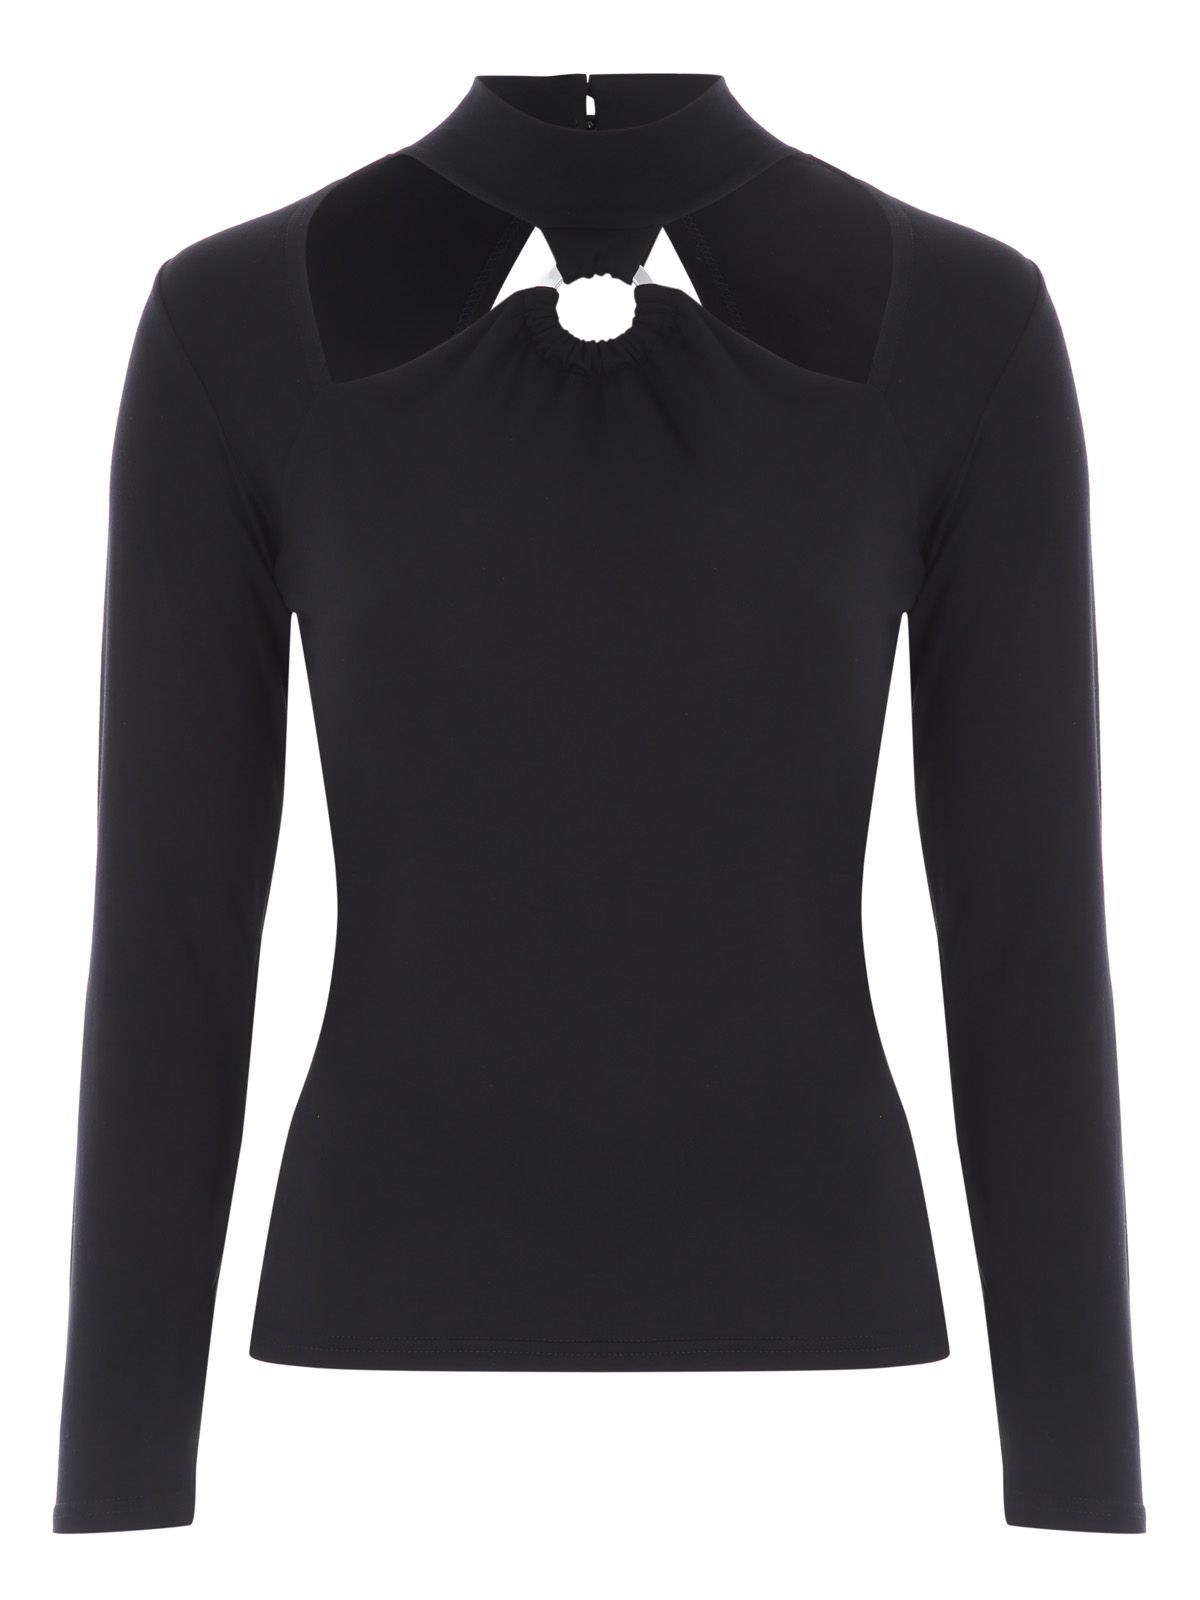 Jane Norman Black Ring Cut Out Top, Black